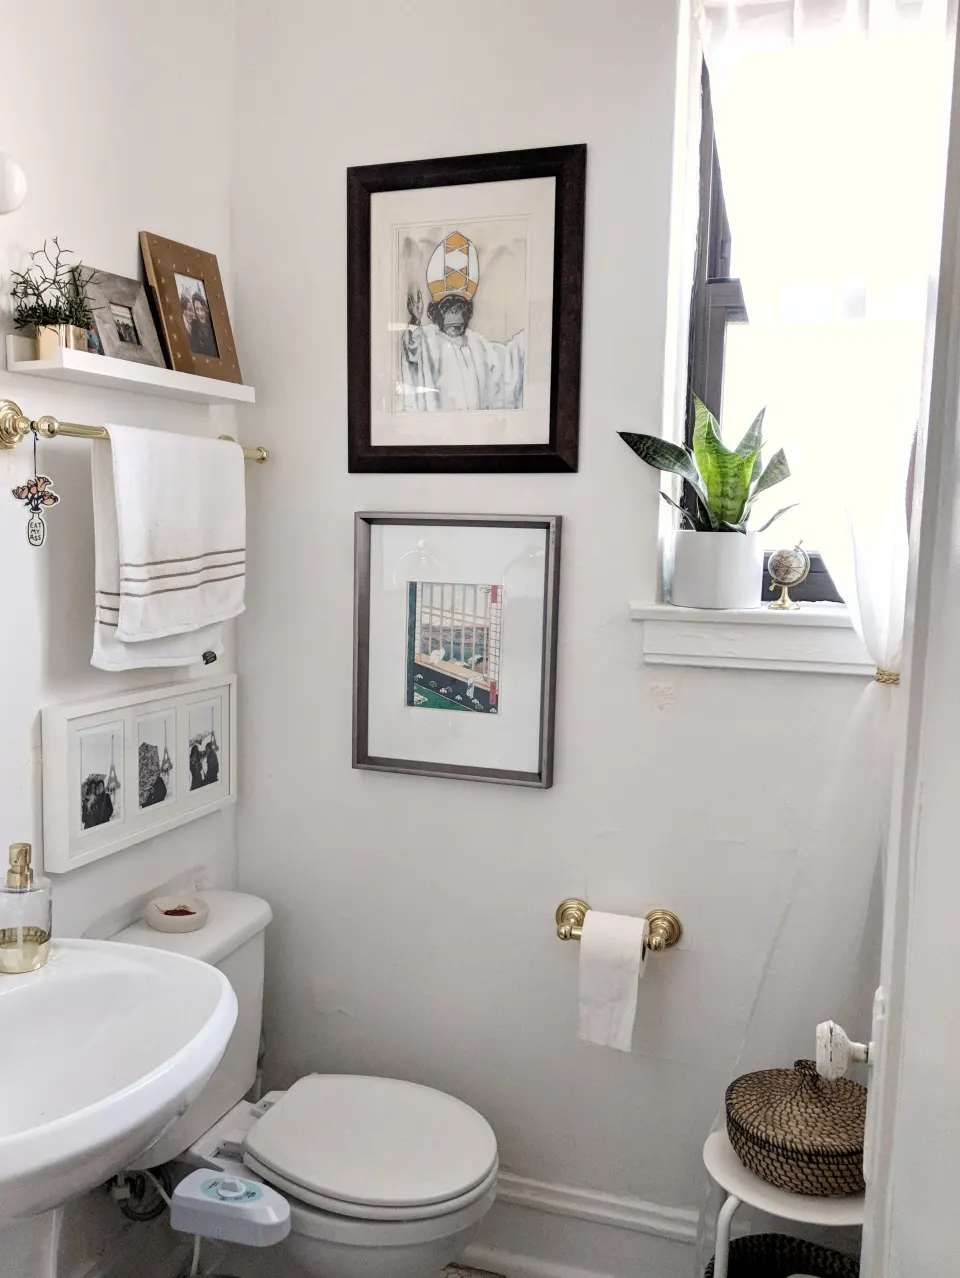 25 Genius Design Storage Ideas For Your Small Bathroom Small Apartment Therapy Bathroom Design Small Apartment Therapy Small Spaces